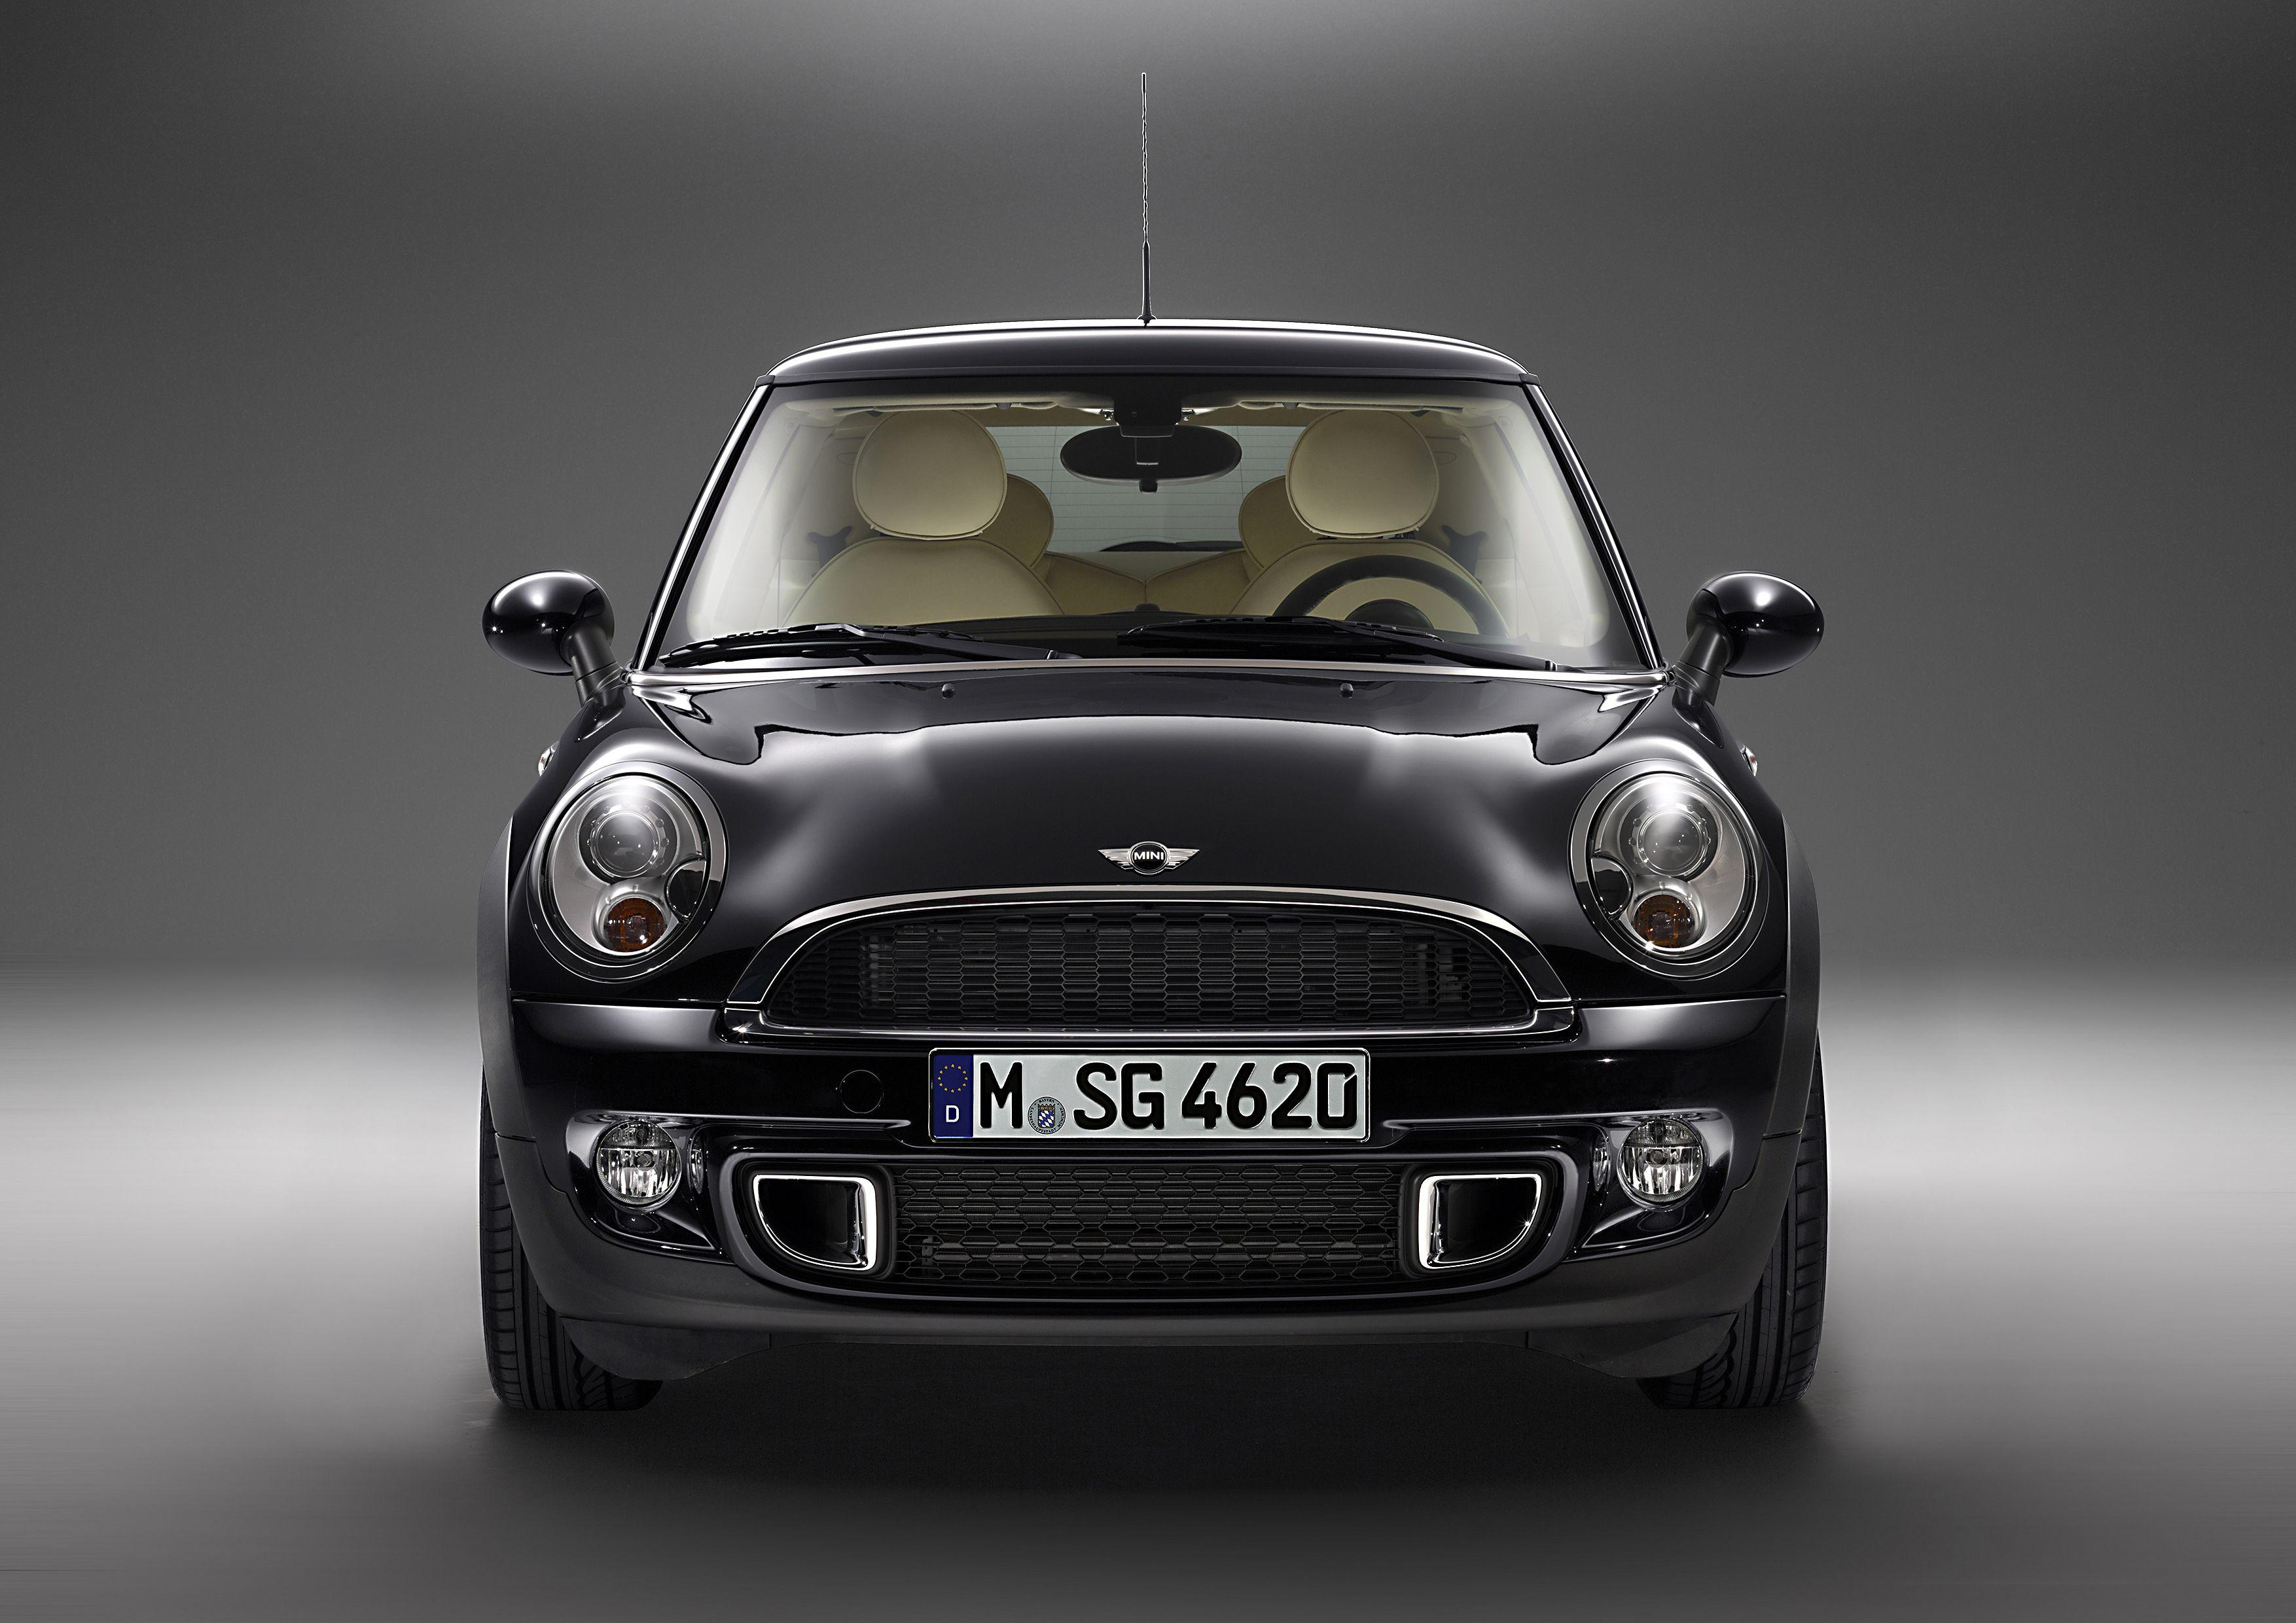 Black Mini Cooper Goodwood Car Wallpapers Image Wallpapers